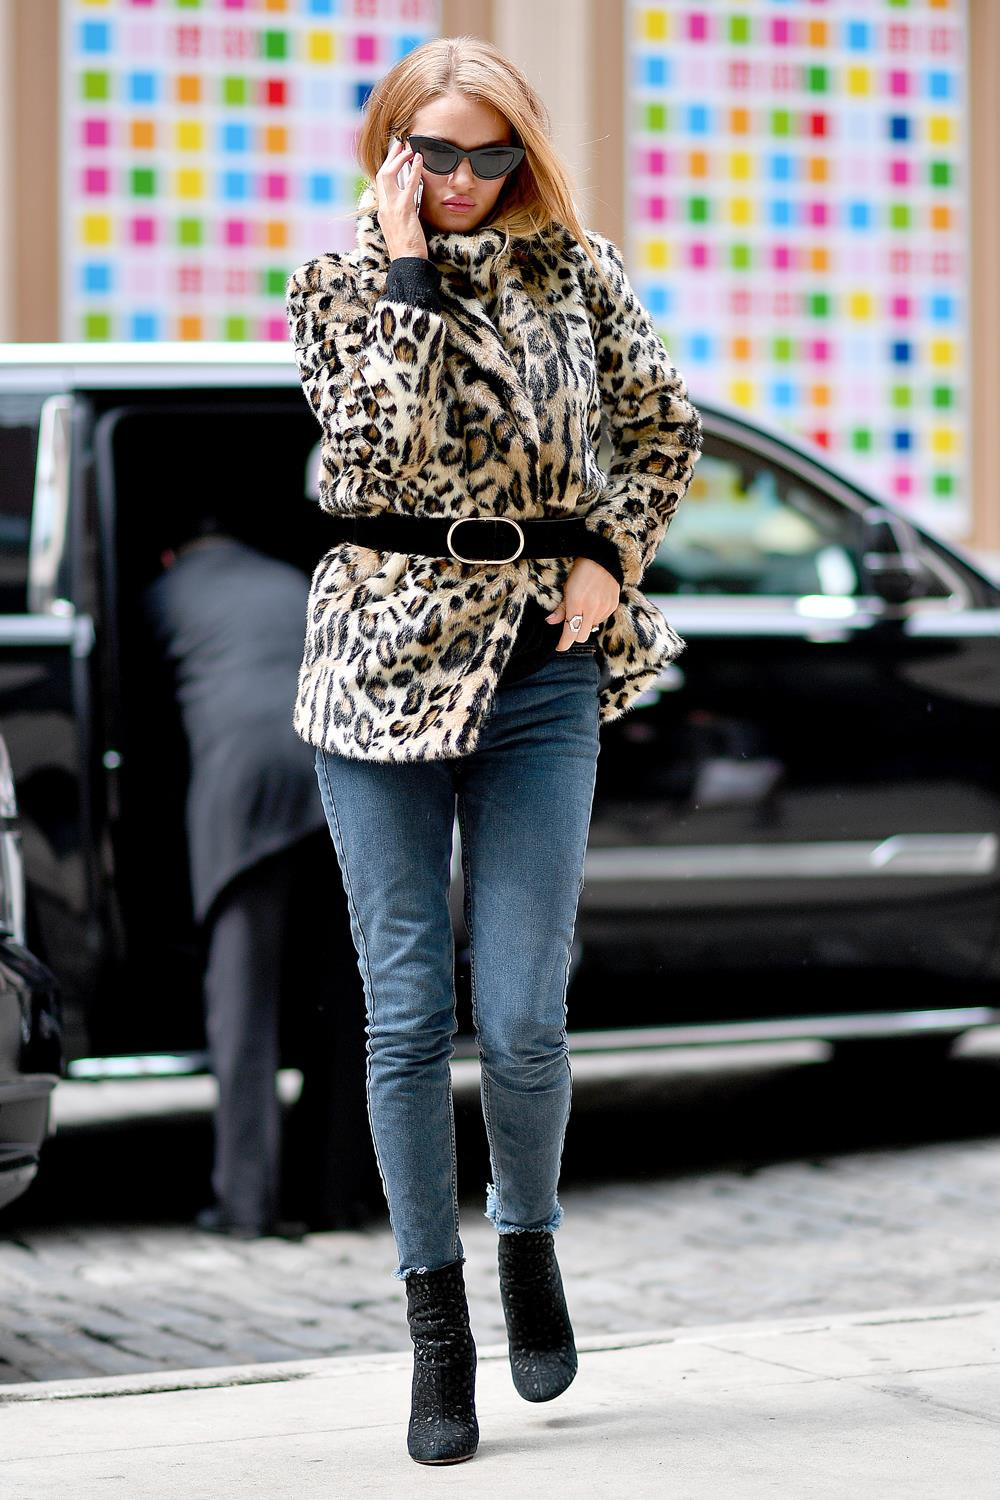 estampado leopardo Rosie Huntington Whiteley 2. Con jeans